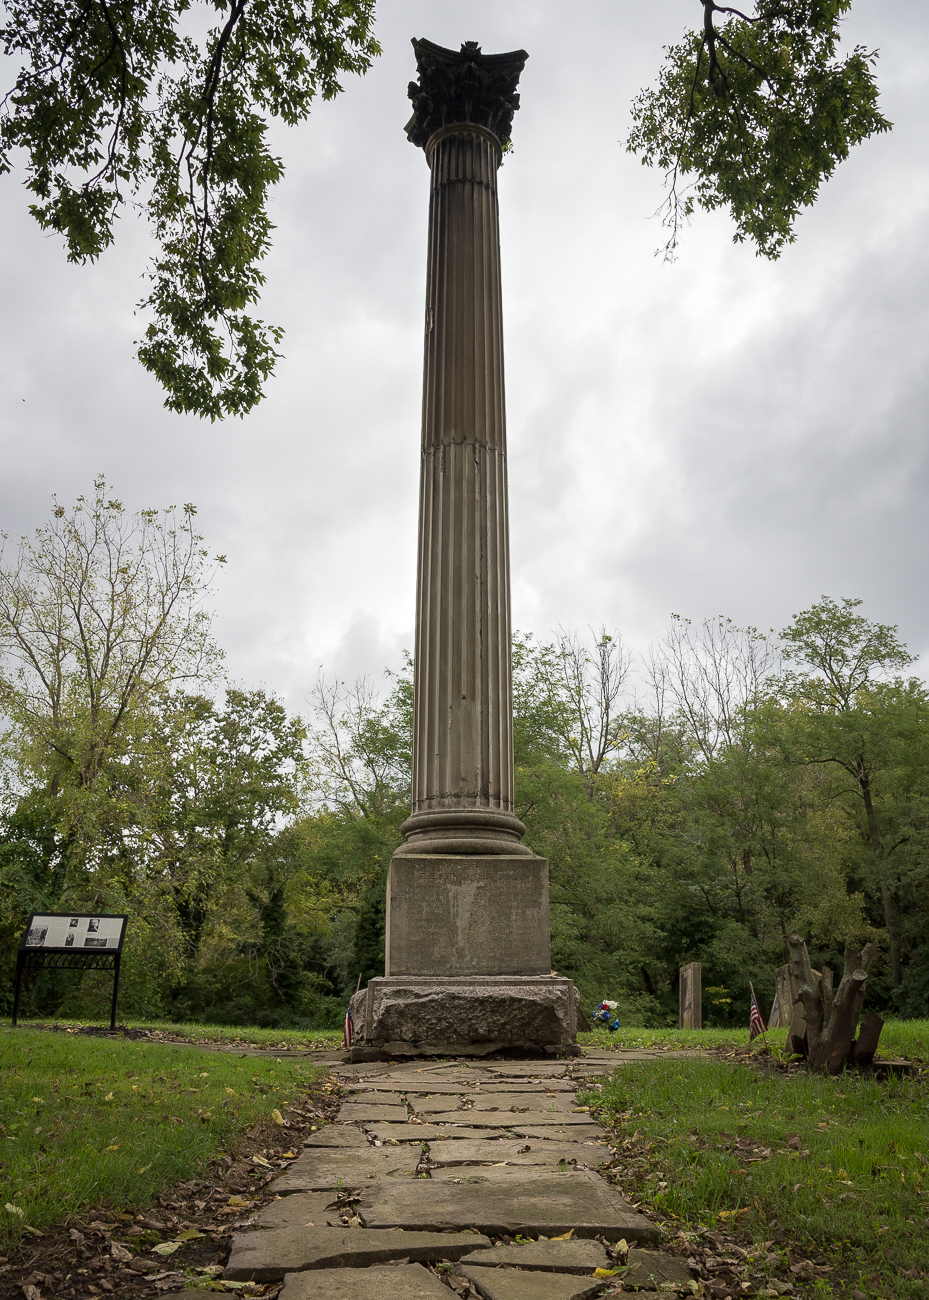 A Corinthian pillar stands at the top of the peak of the graveyard. It is a memorial for the pioneers who settled in Columbia and are buried in the cemetery. / Image: Phil Armstrong, Cincinnati Refined // Published: 10.3.18